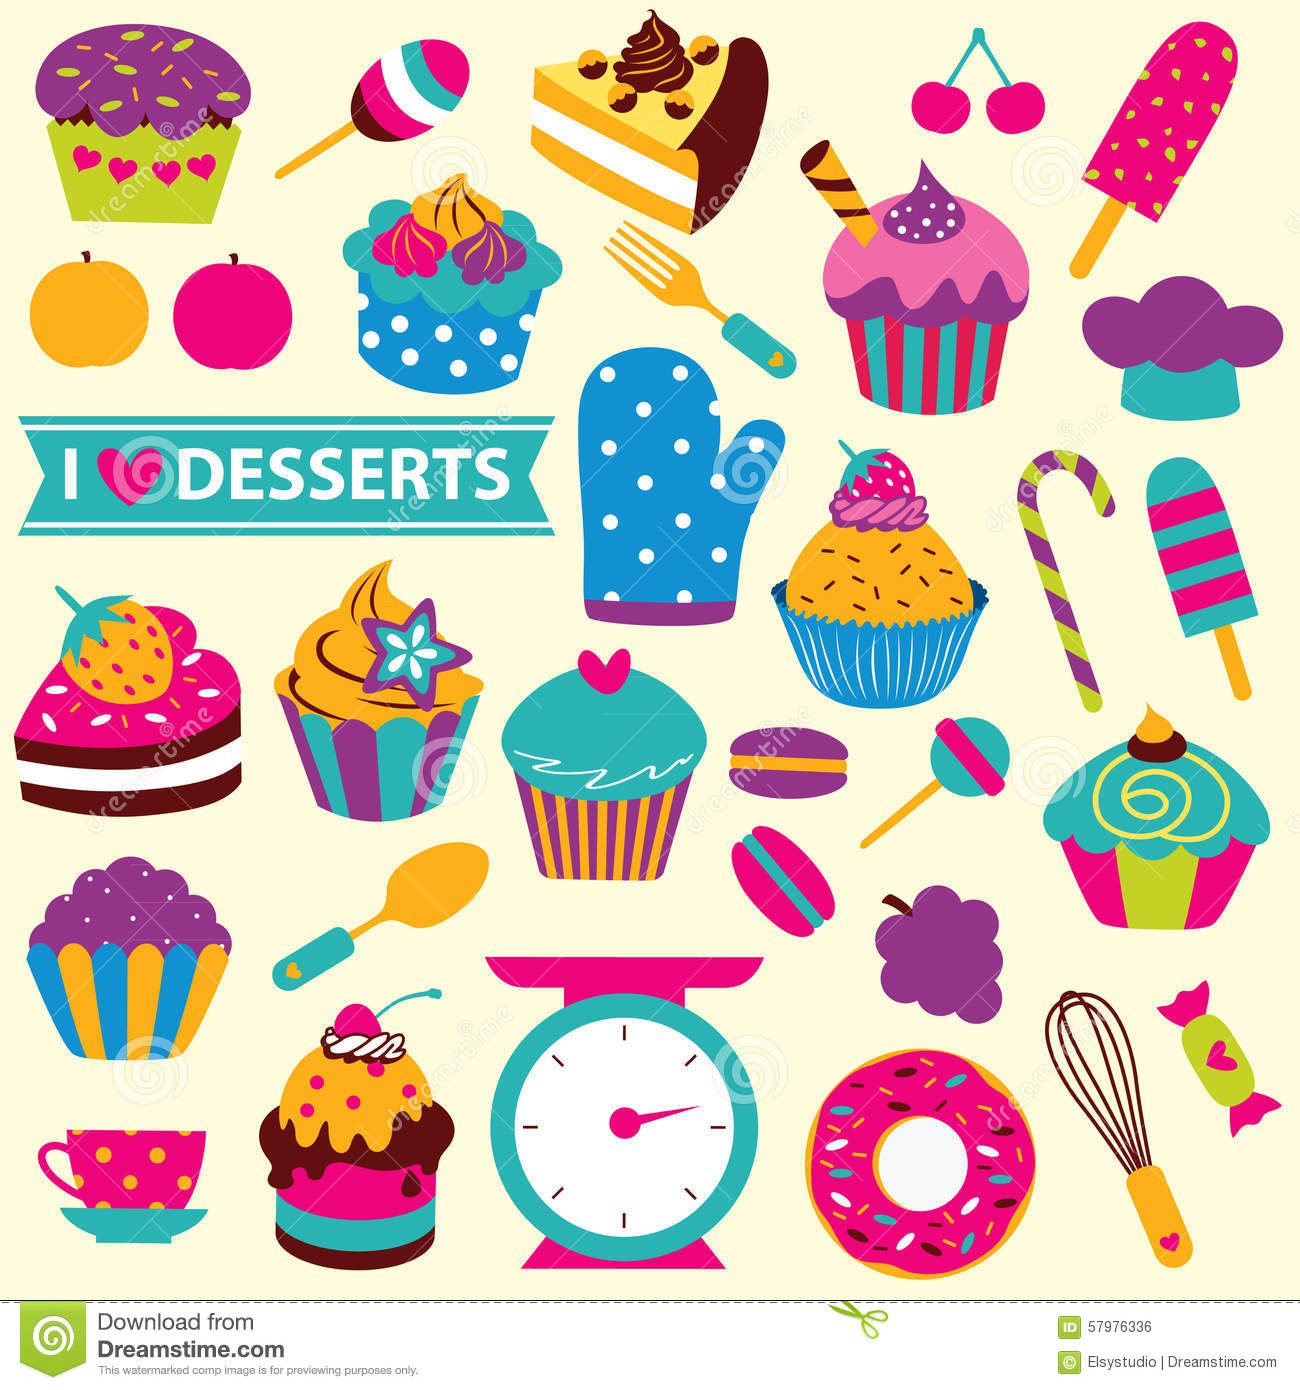 Dessert clipart cute. Free images desserts for